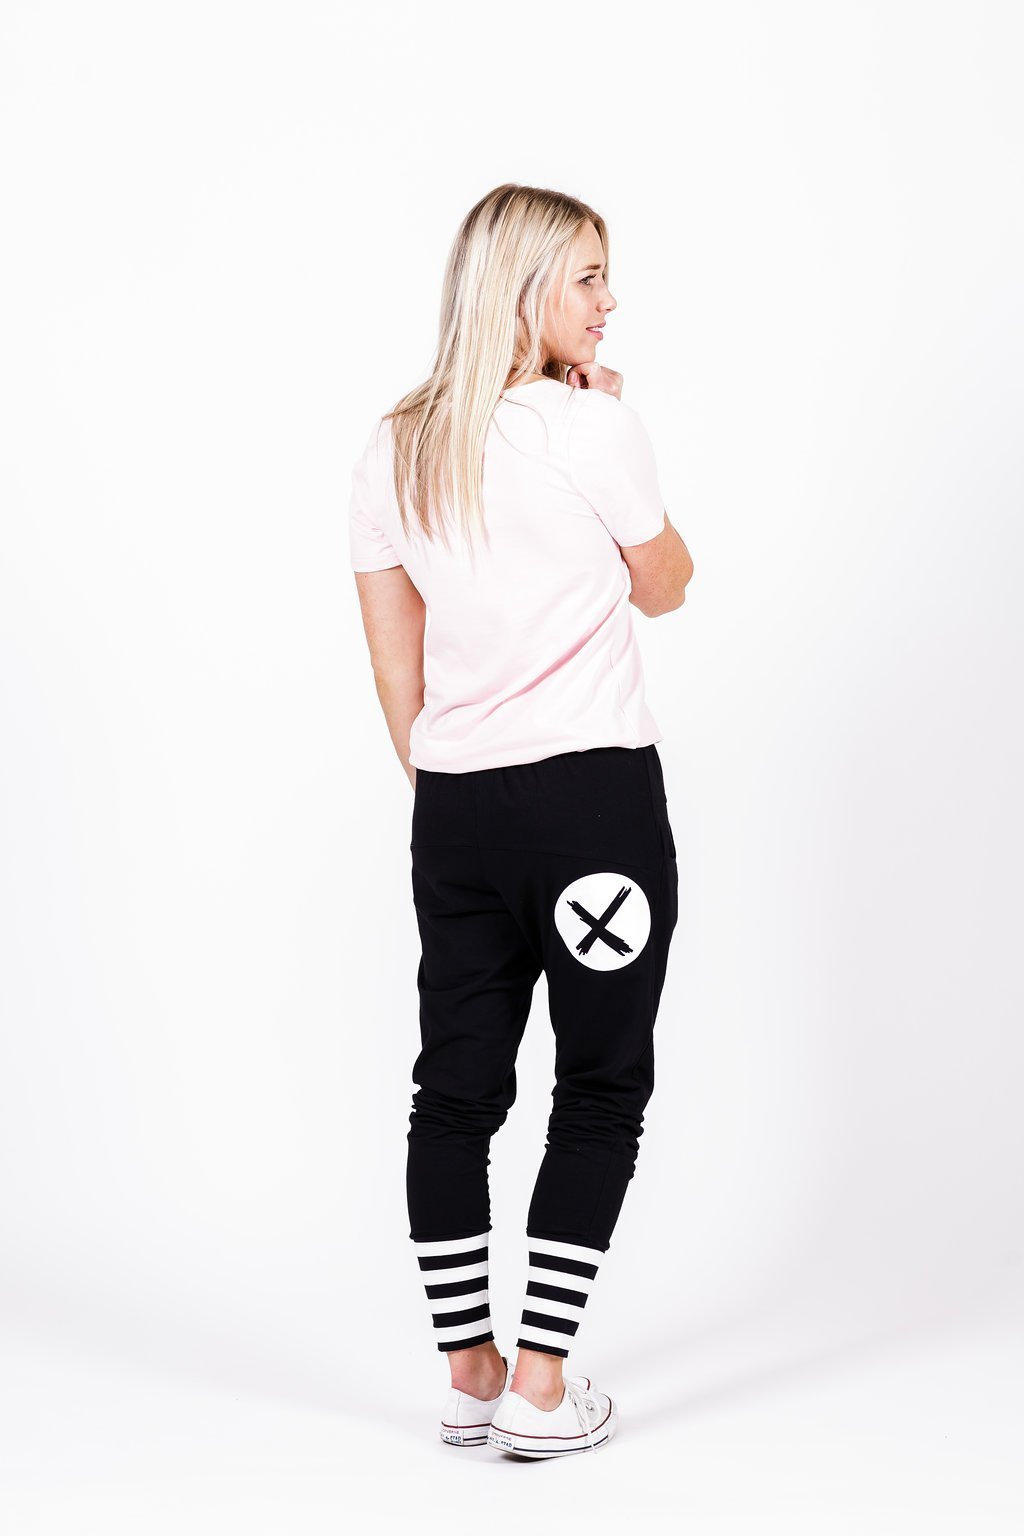 Home-Lee: Apartment Pants -Black With White X Spot Print And Stripe Cuffs - 8 image